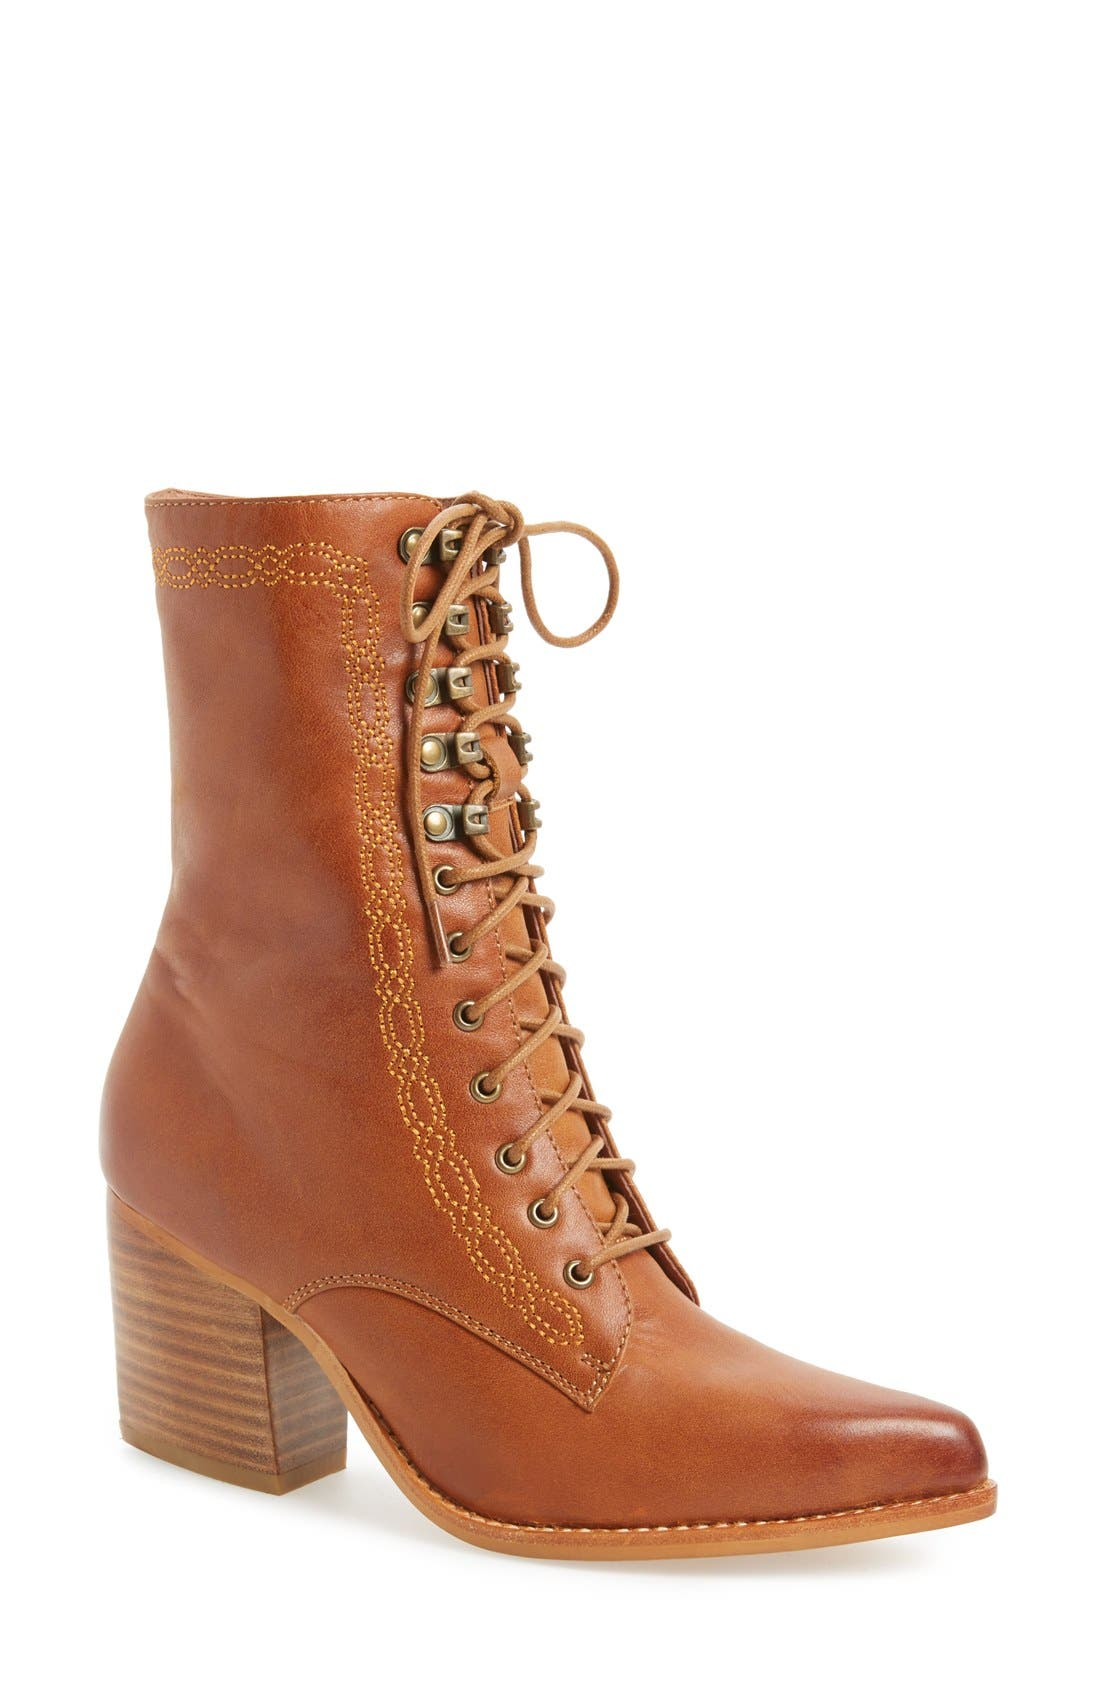 Alternate Image 1 Selected - Jeffrey Campbell 'Boothe' Leather Boot (Women)